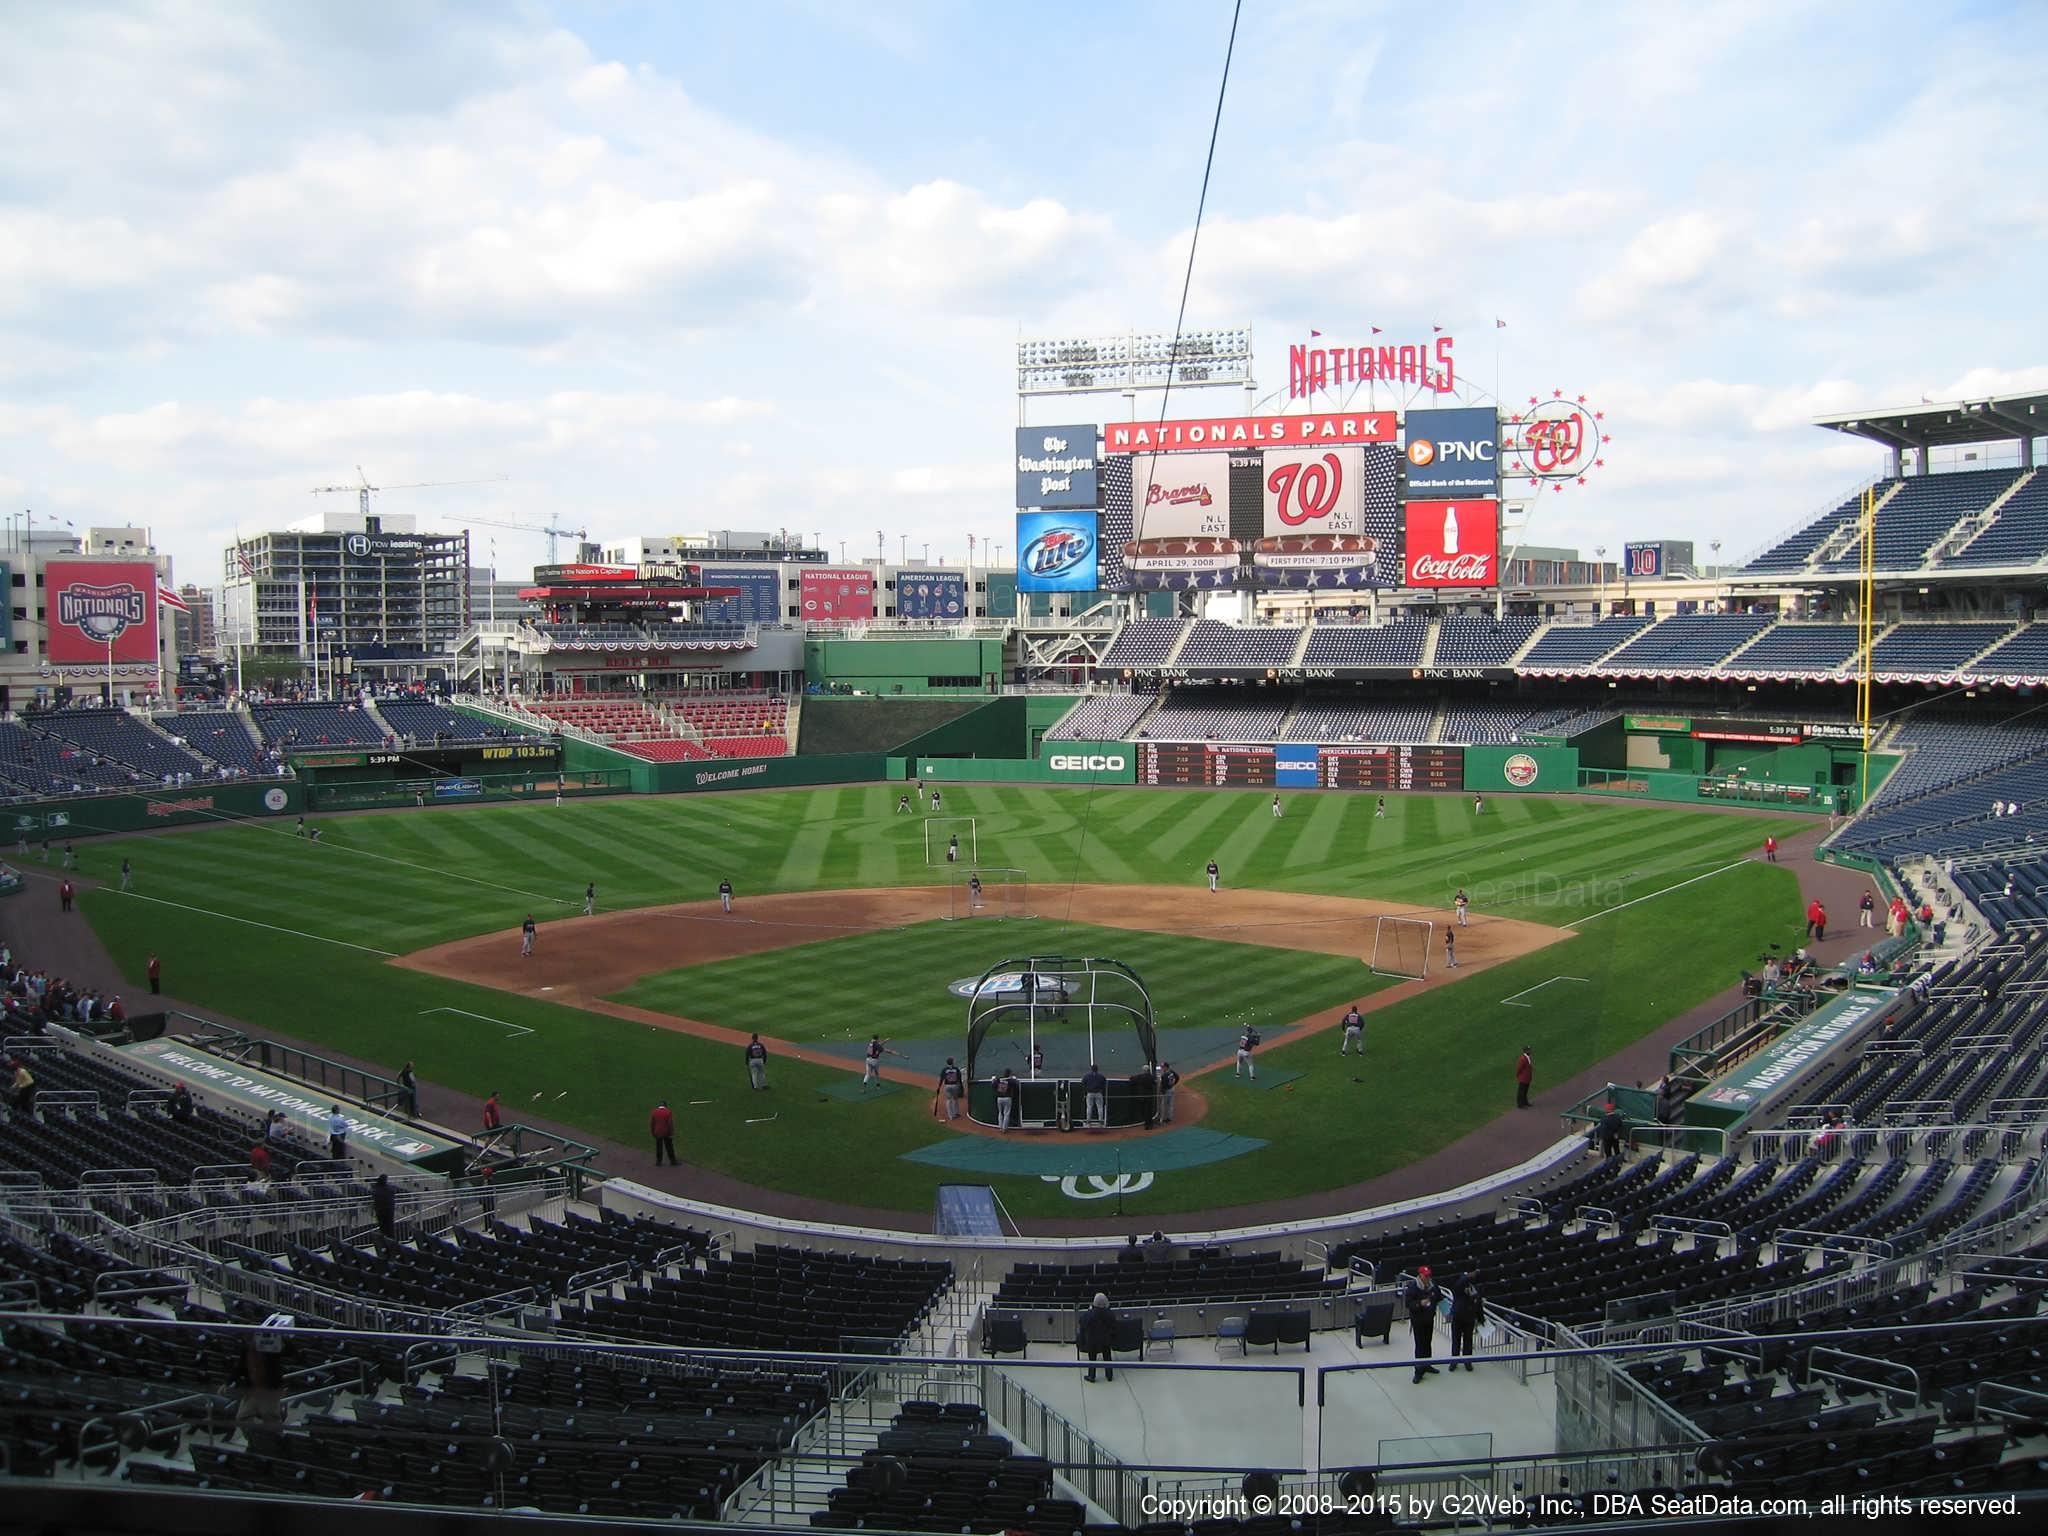 Nationals Park Seating View from Section 213